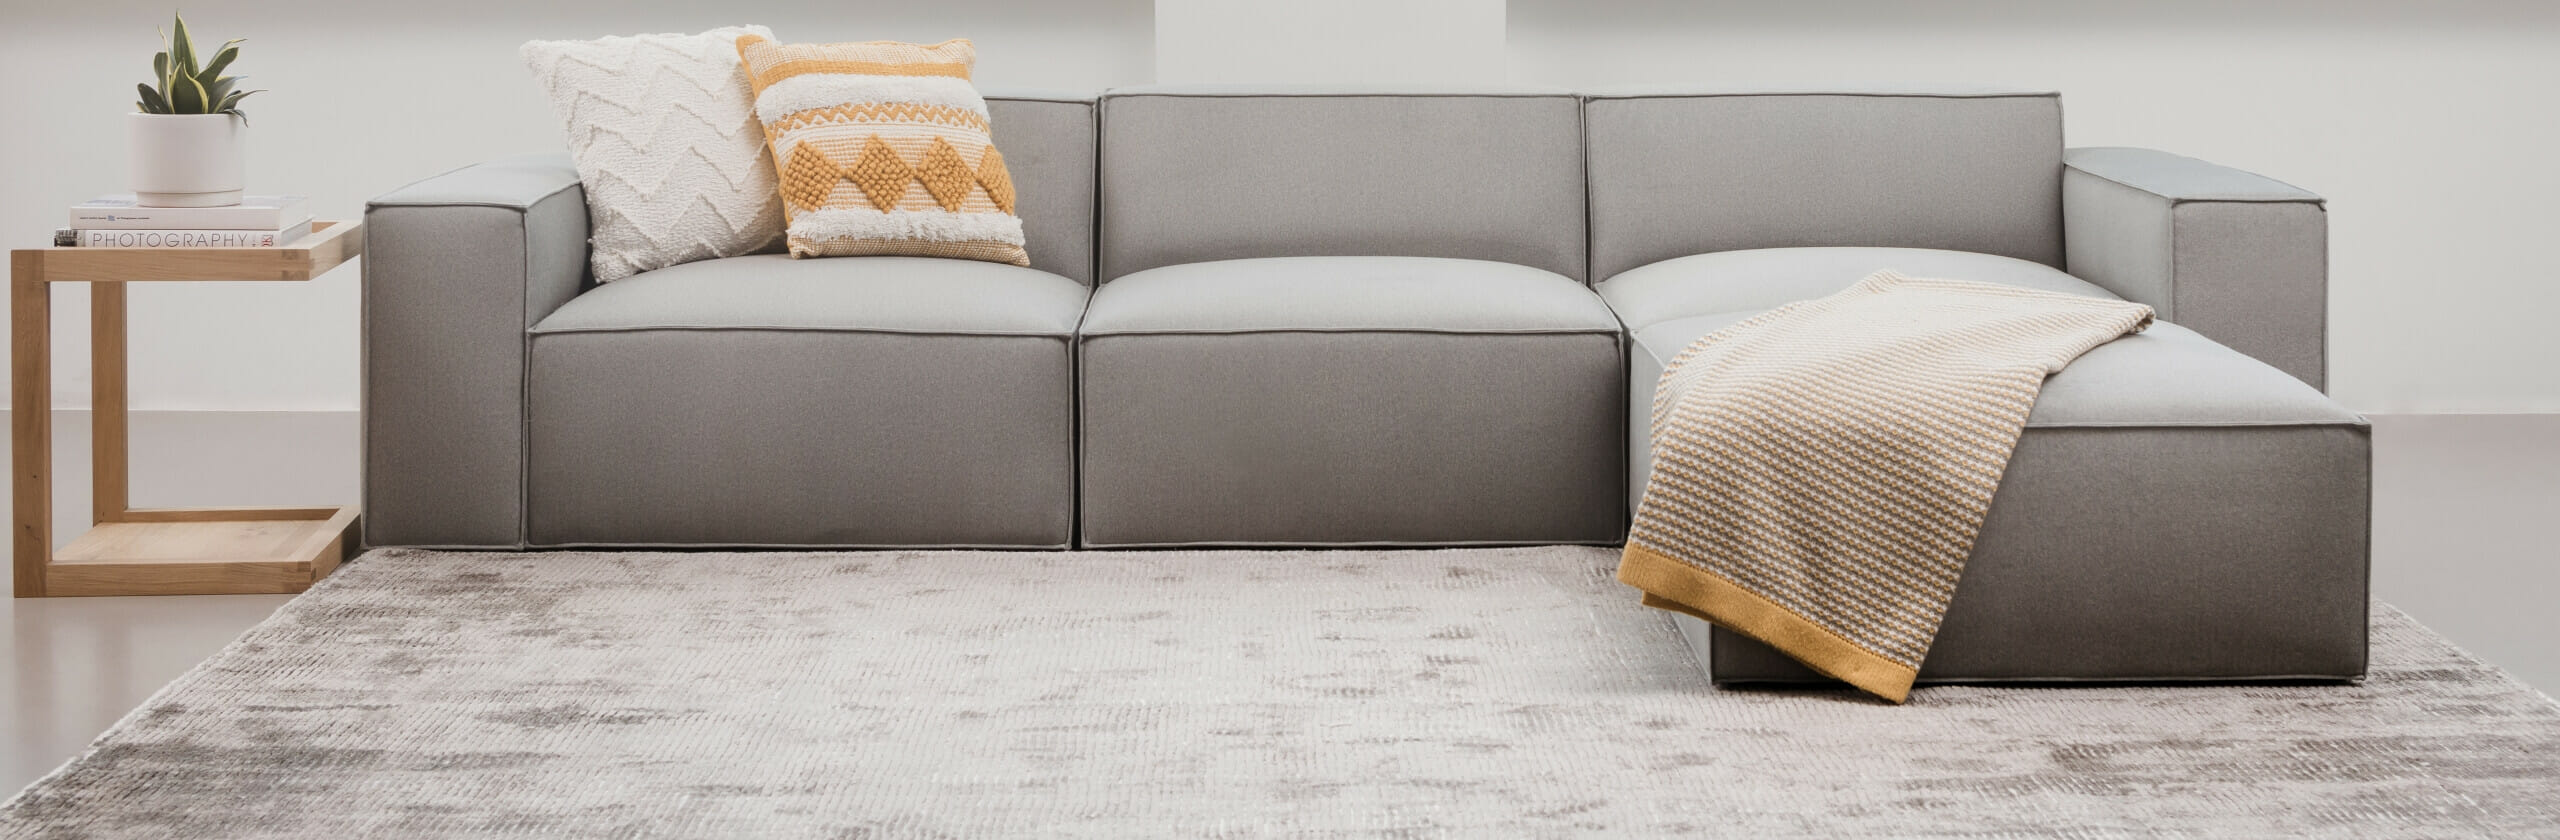 Pacific sectional sofa